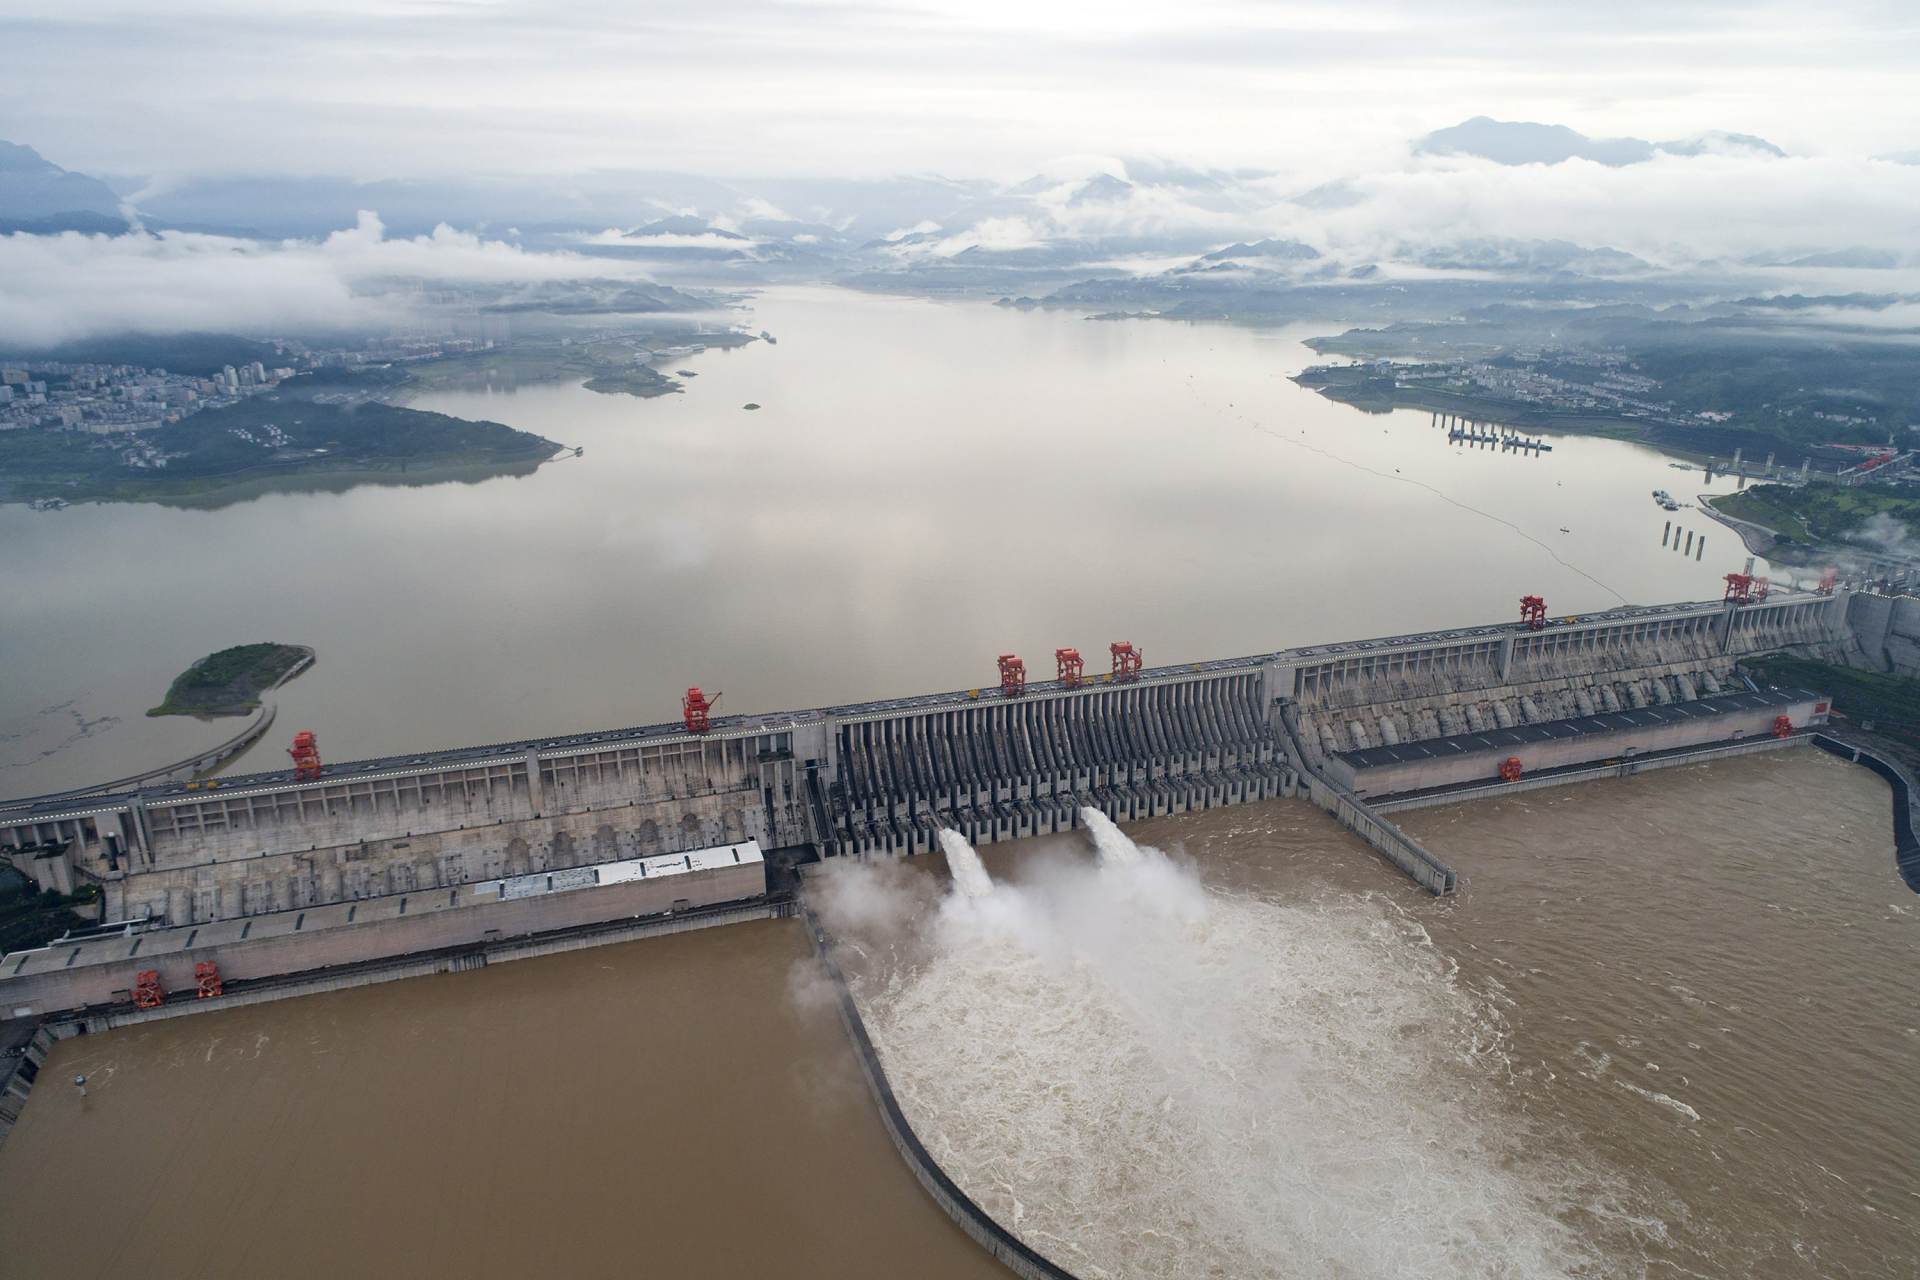 China massive flood updates: China blows up dam to discharge floodwaters as death toll increases